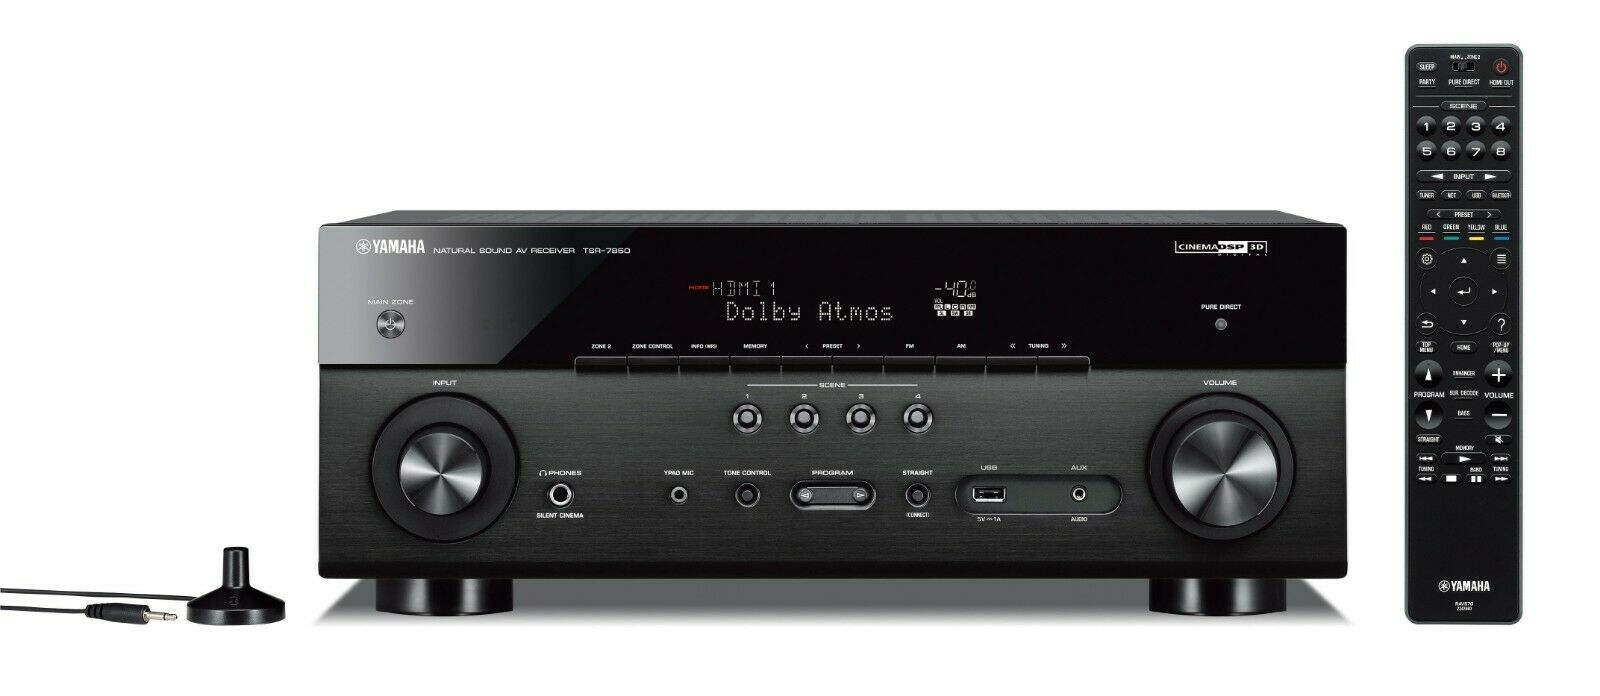 Yamaha TSR-7850R 7.2 ch 4K Atmos DTS Receiver - Factory Reconditioned